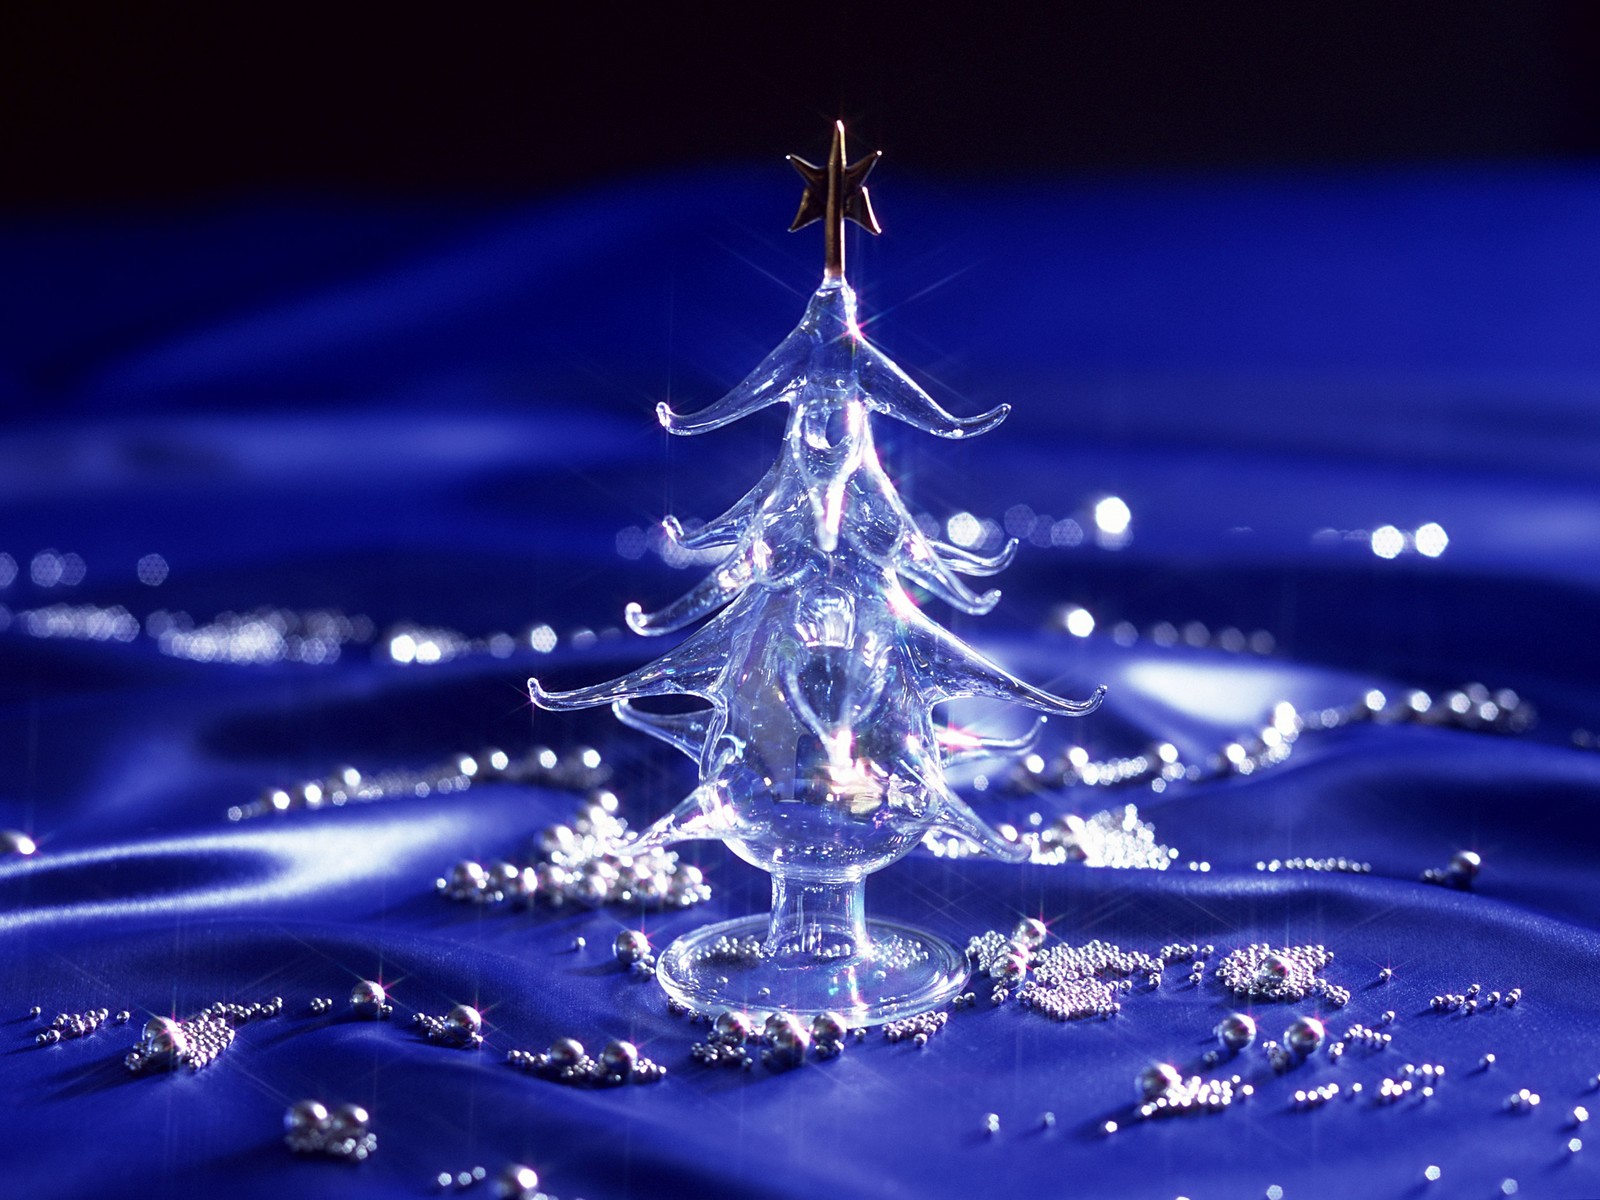 online-free-stuff-download-christmas-tree-wallpapers-h-i-ibackgroundz.com_